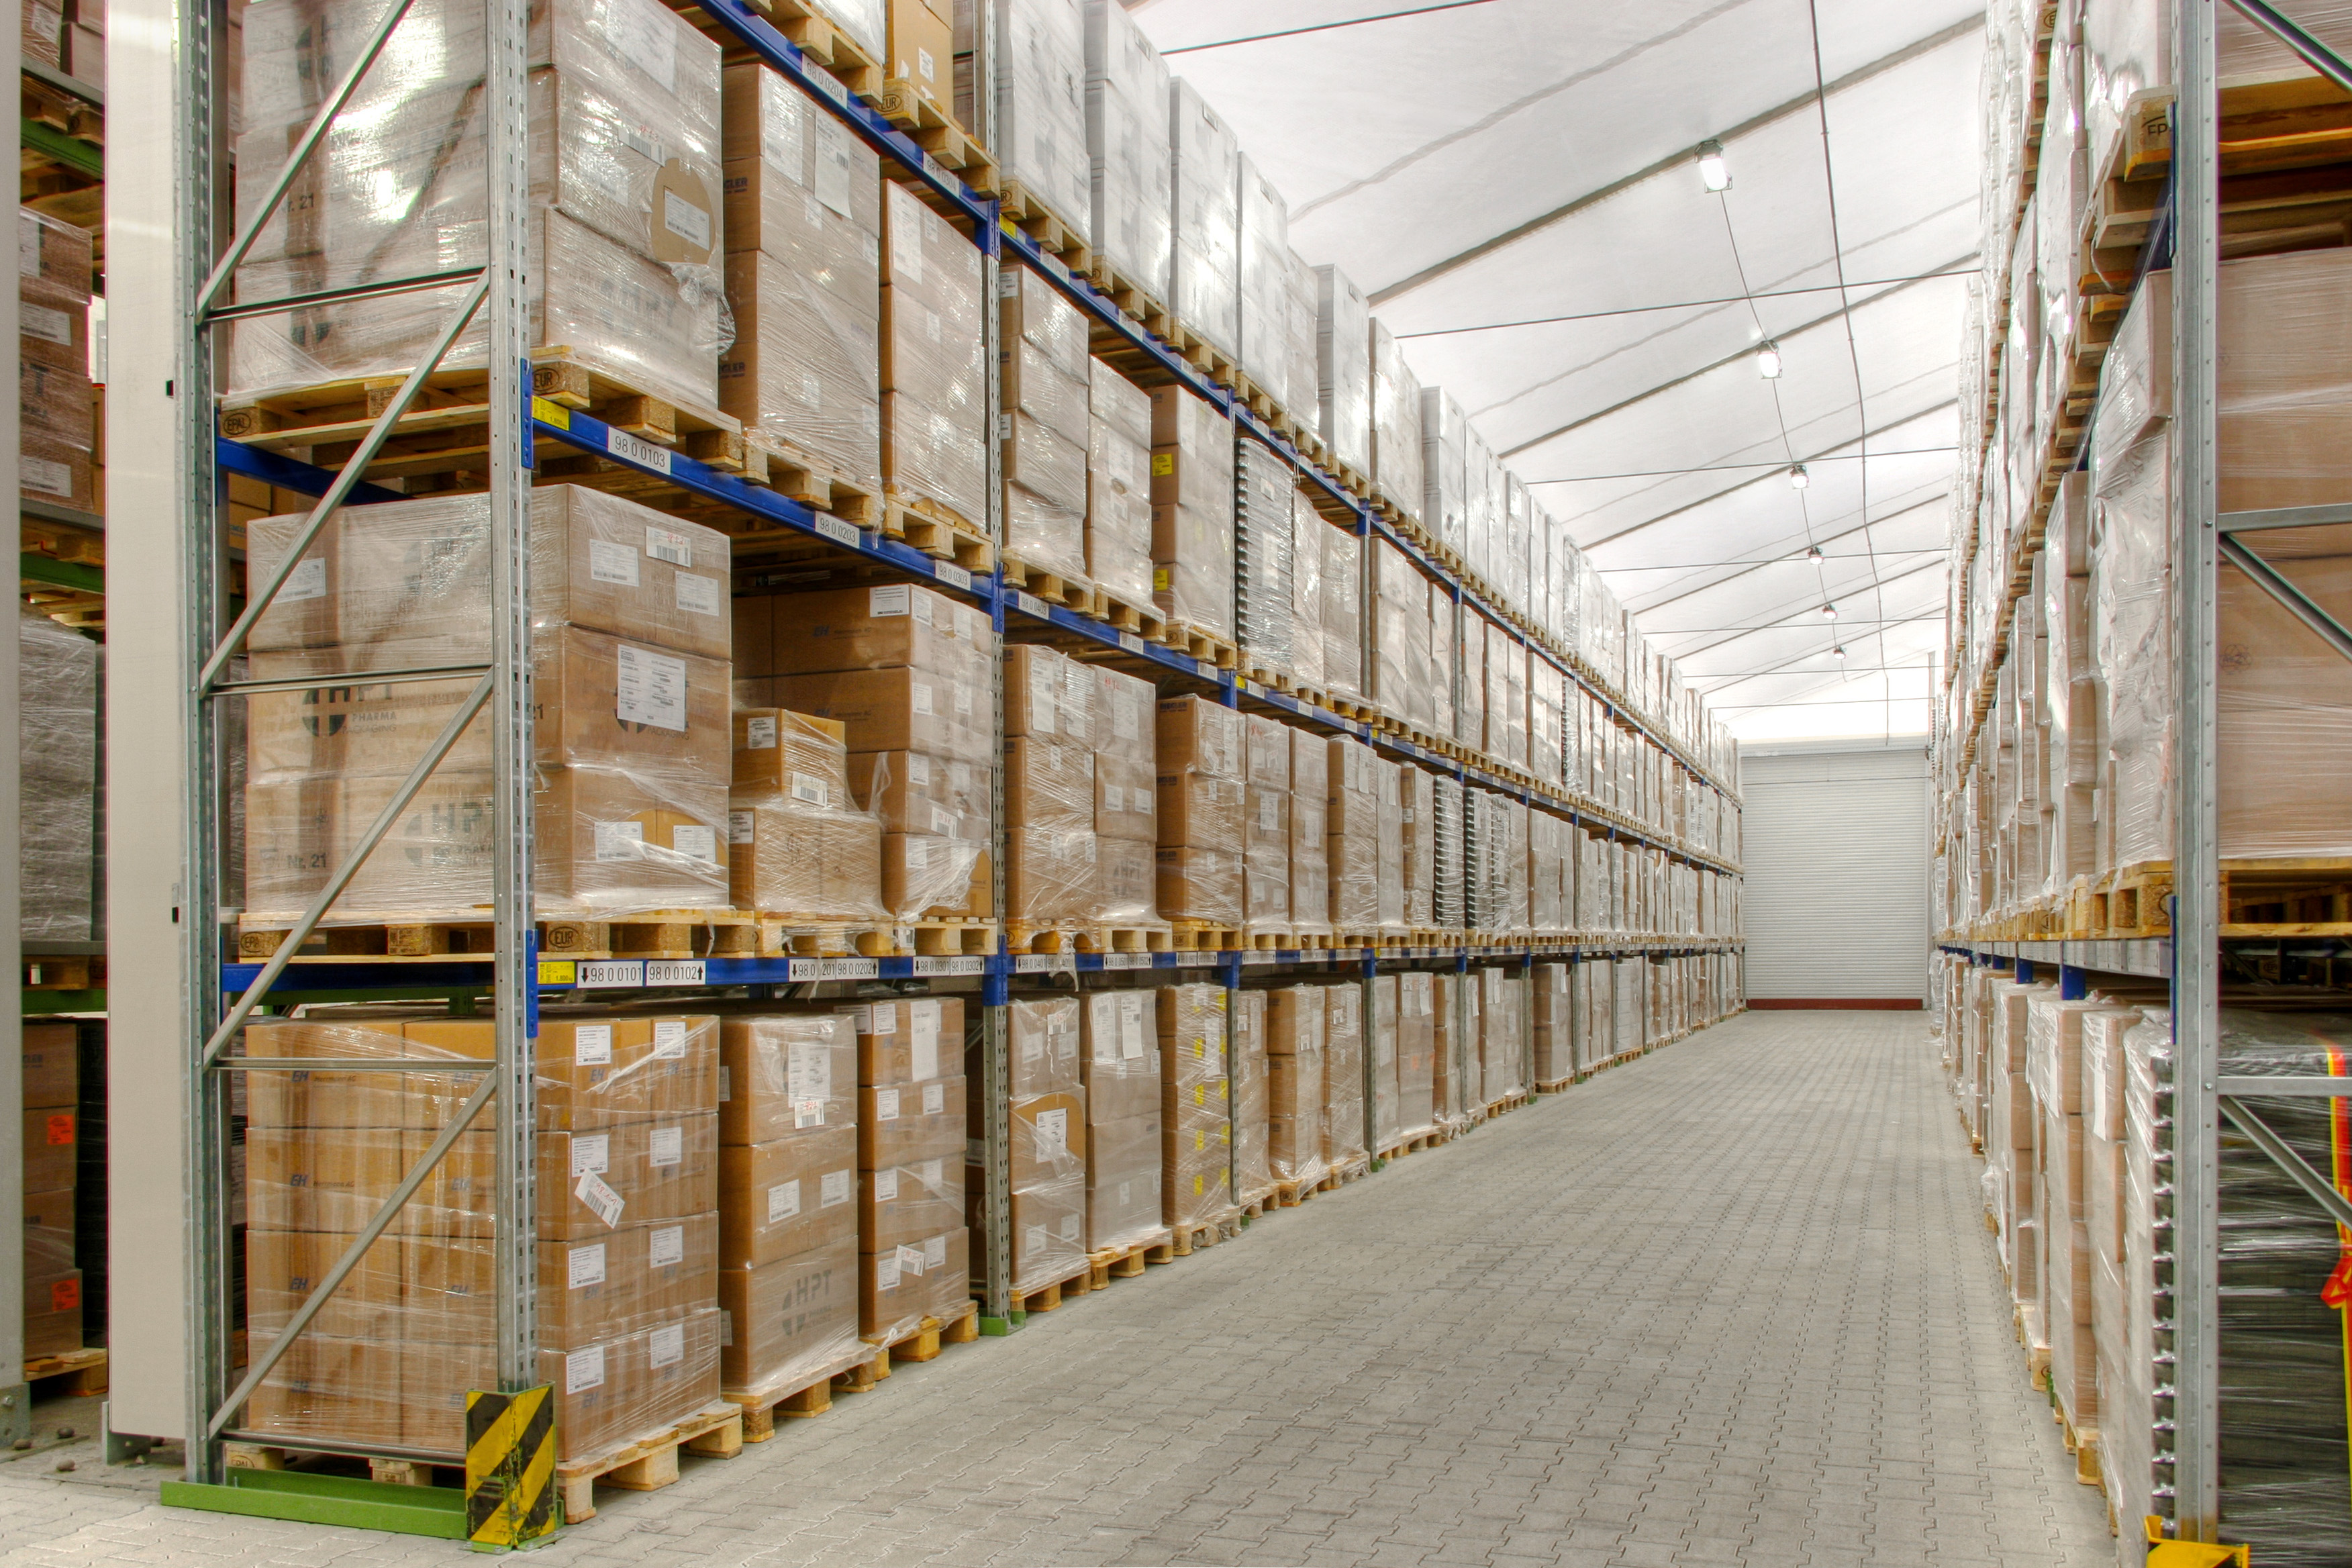 Renting warehouses – a cost-efficient alternative to purchasing